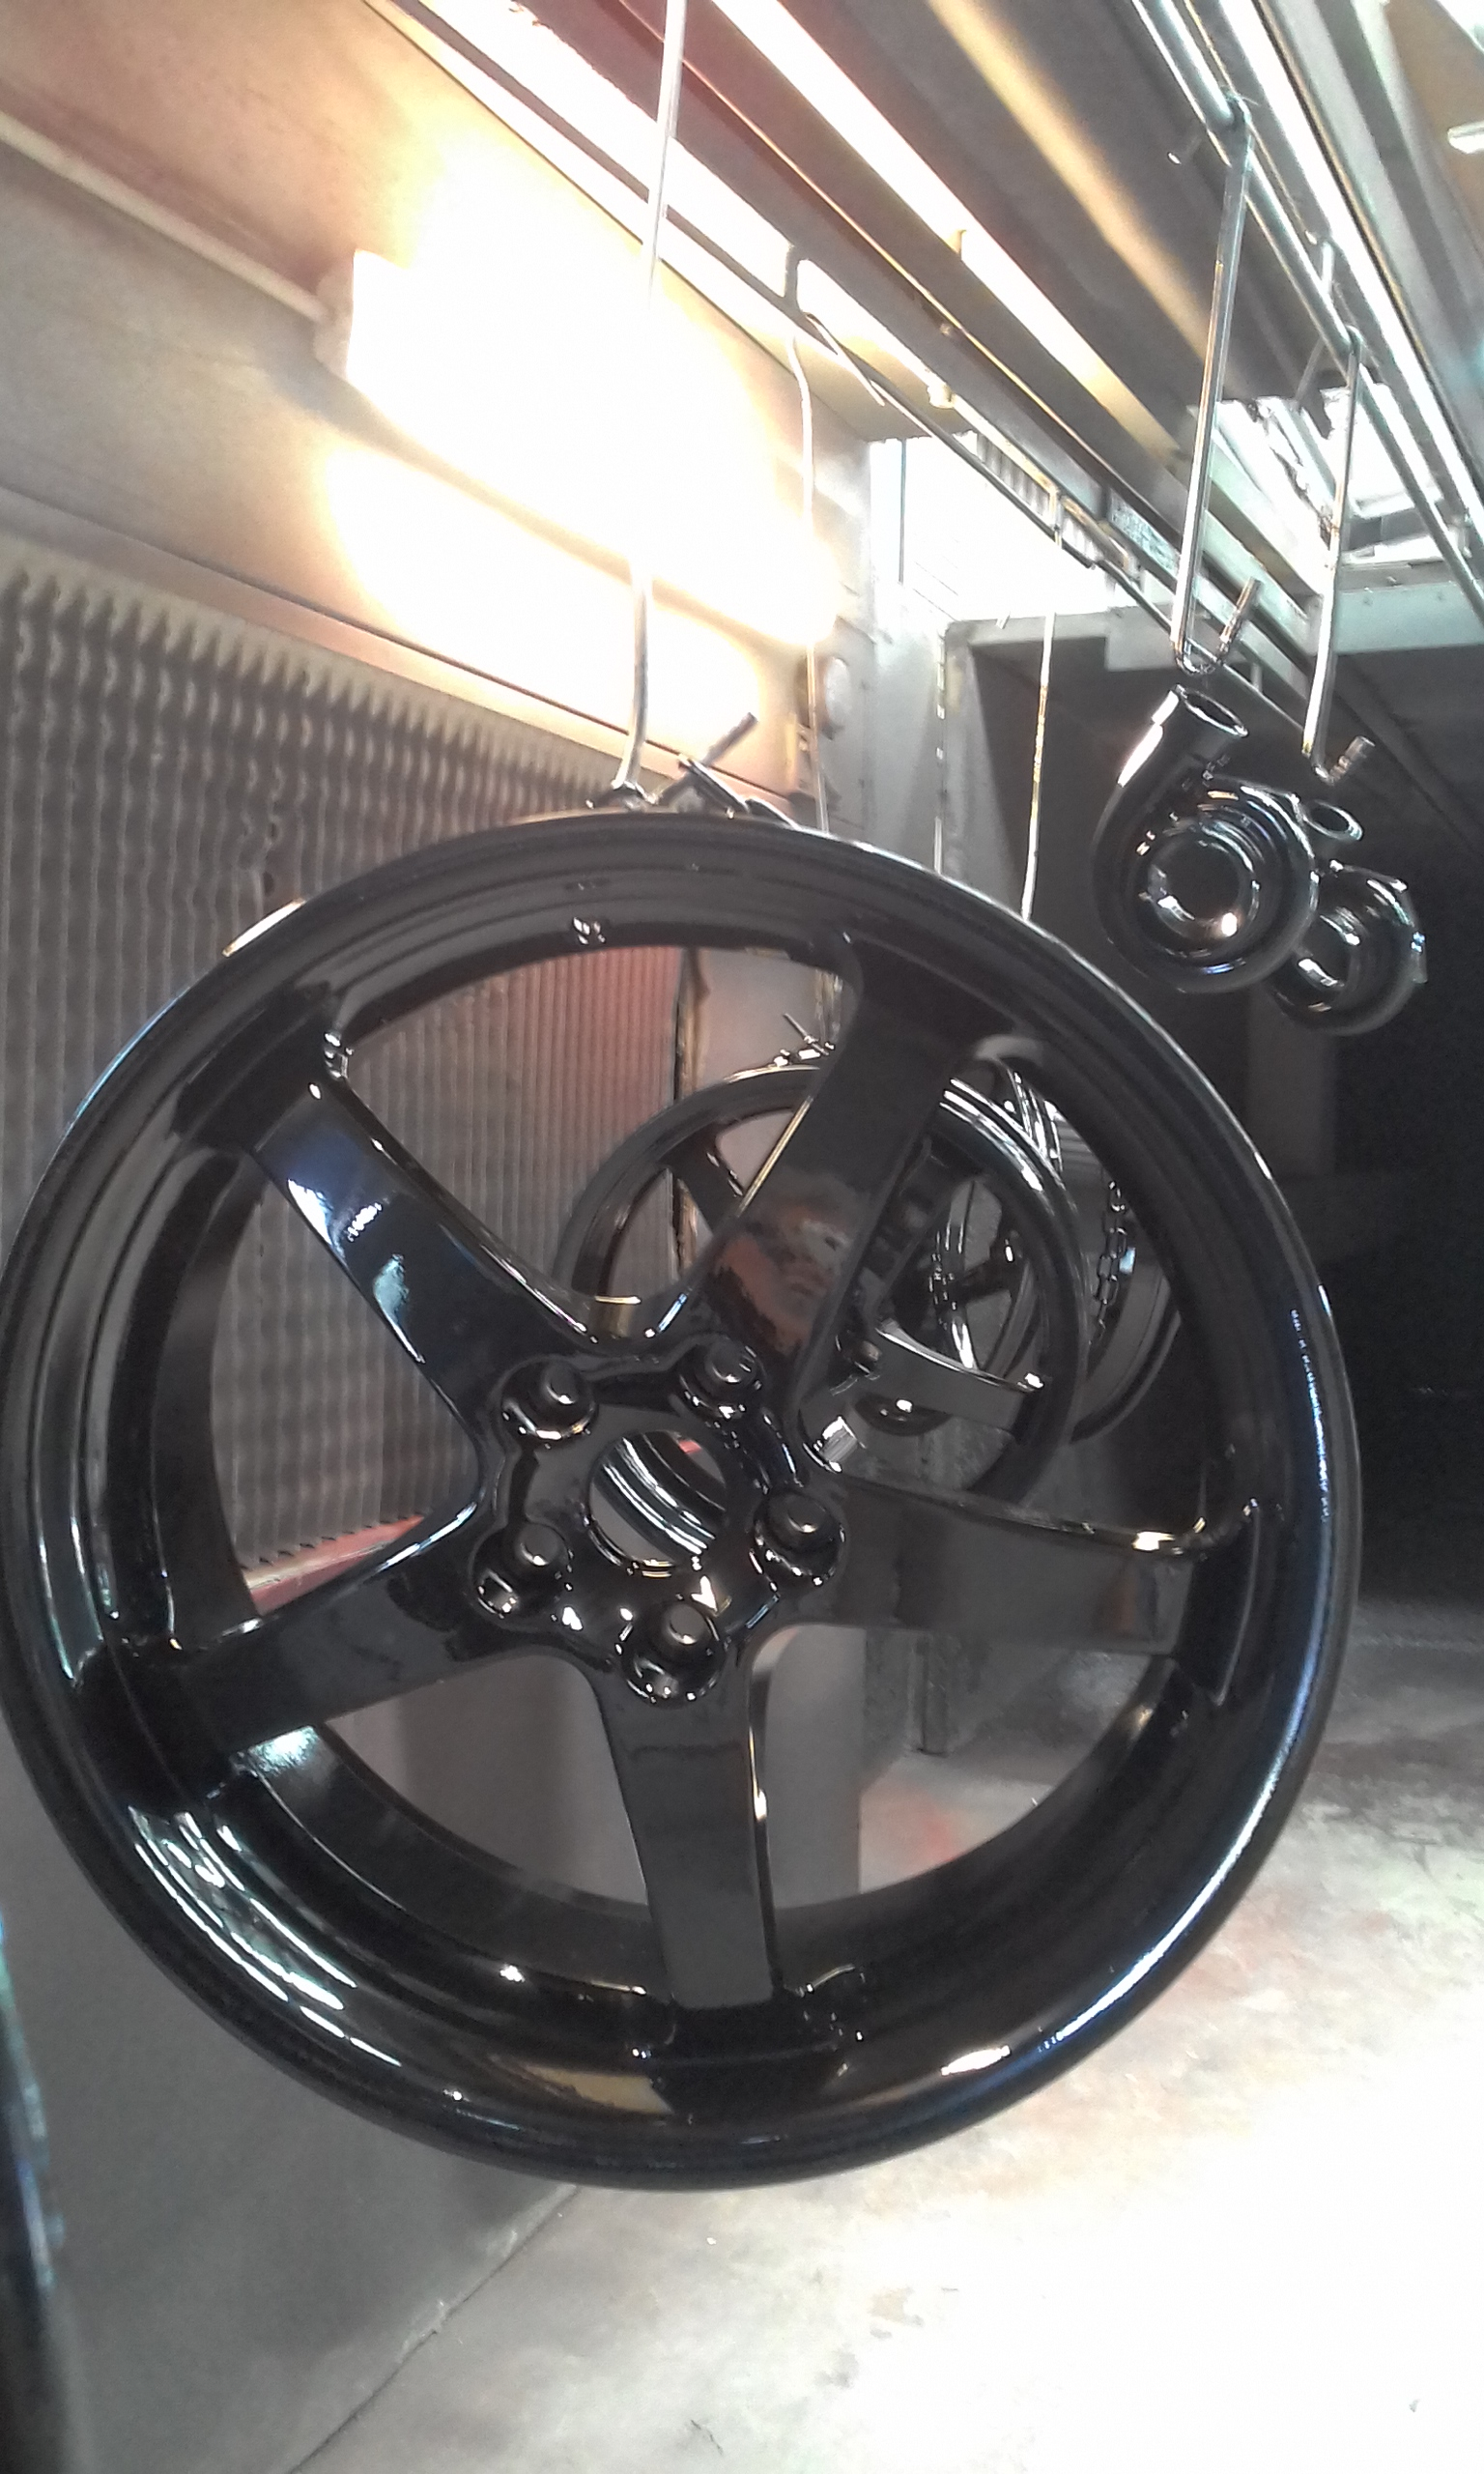 Powder coat - Oxytec Wet Black - HP Designs & Turbos